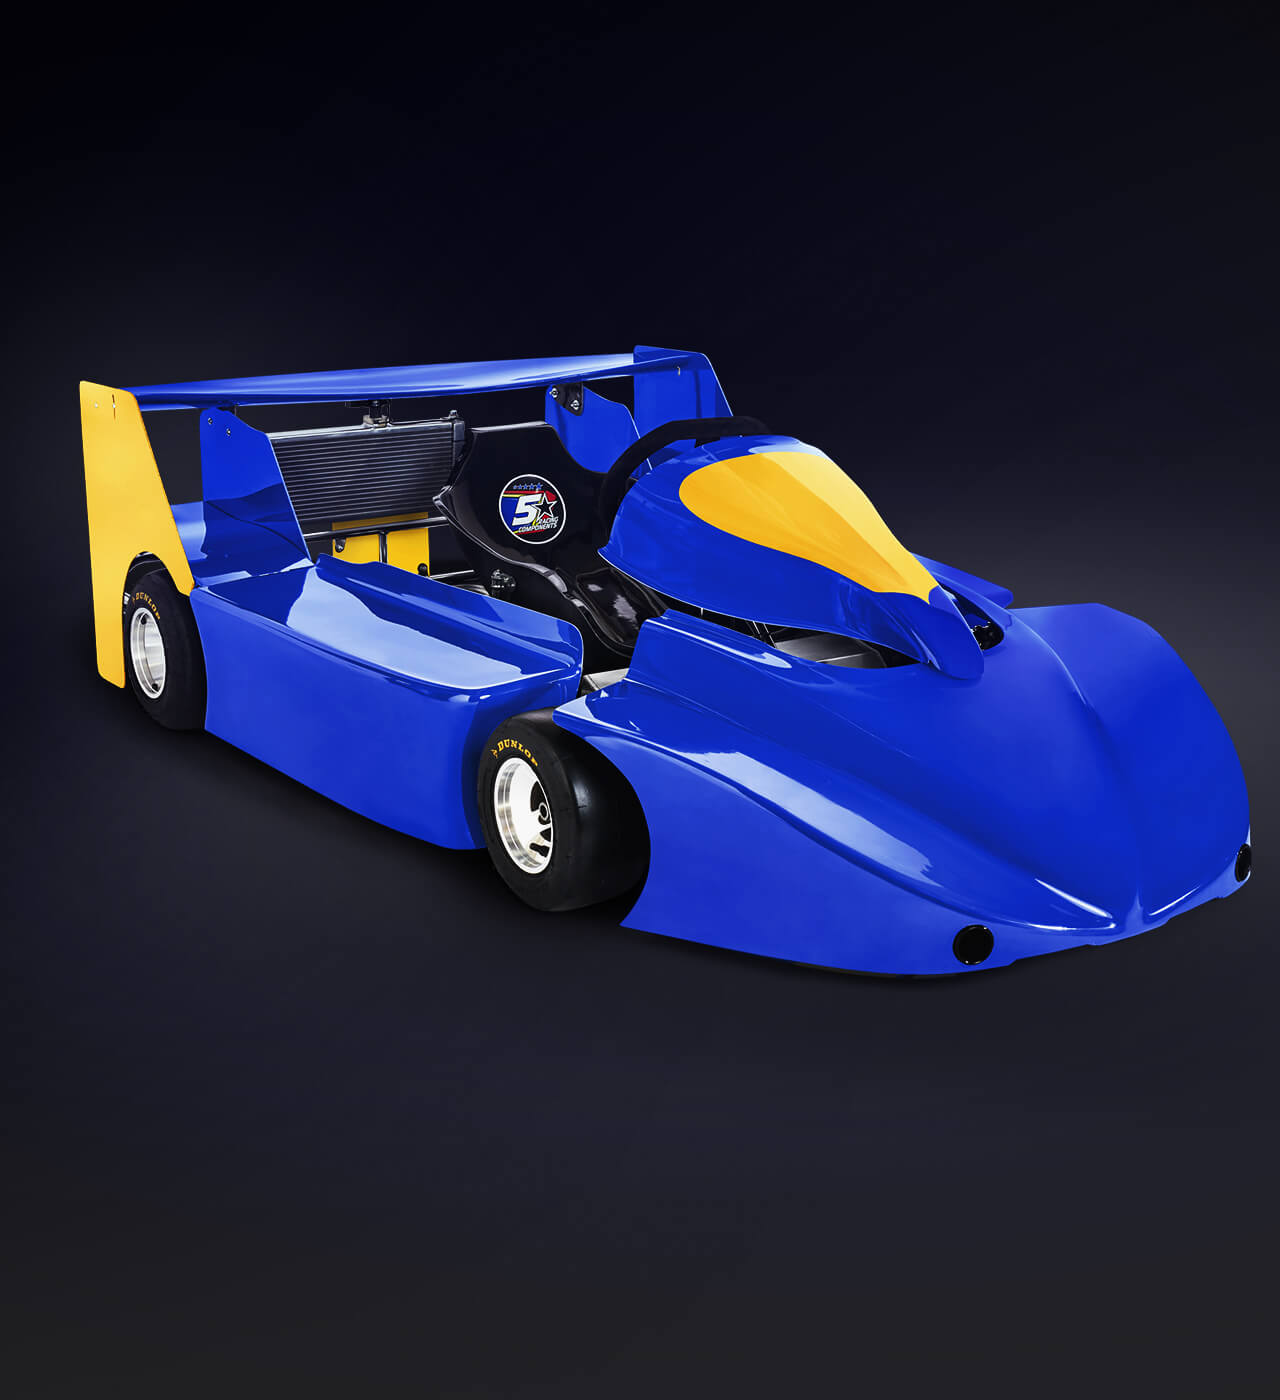 List your used Anderson Karts and parts on our Marketplace